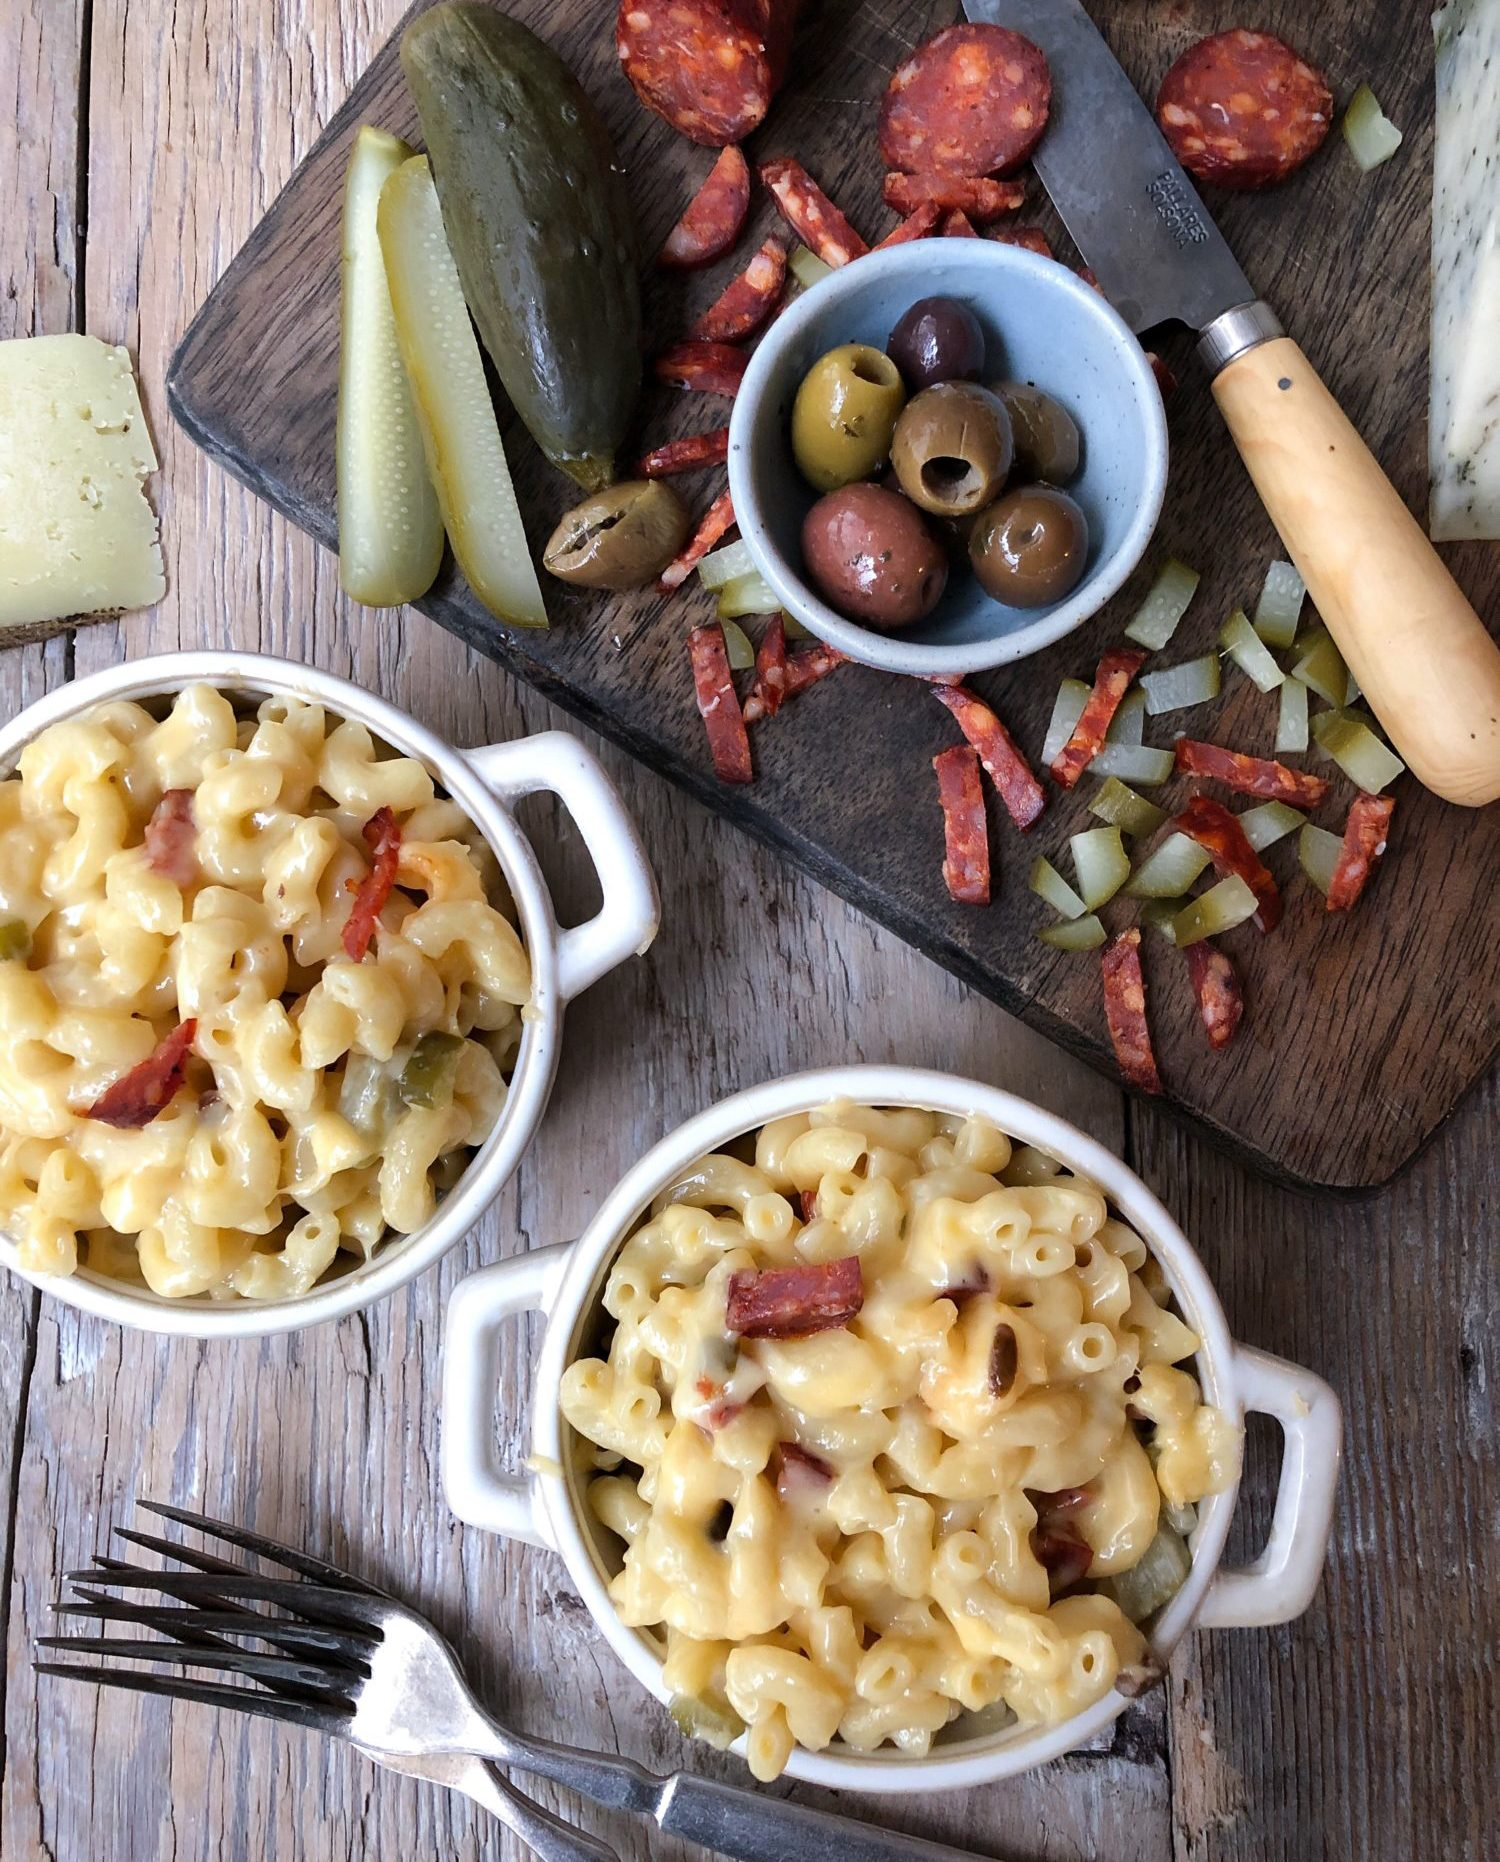 Charcuterie Board Mac and Cheese, stove top macaroni and cheese